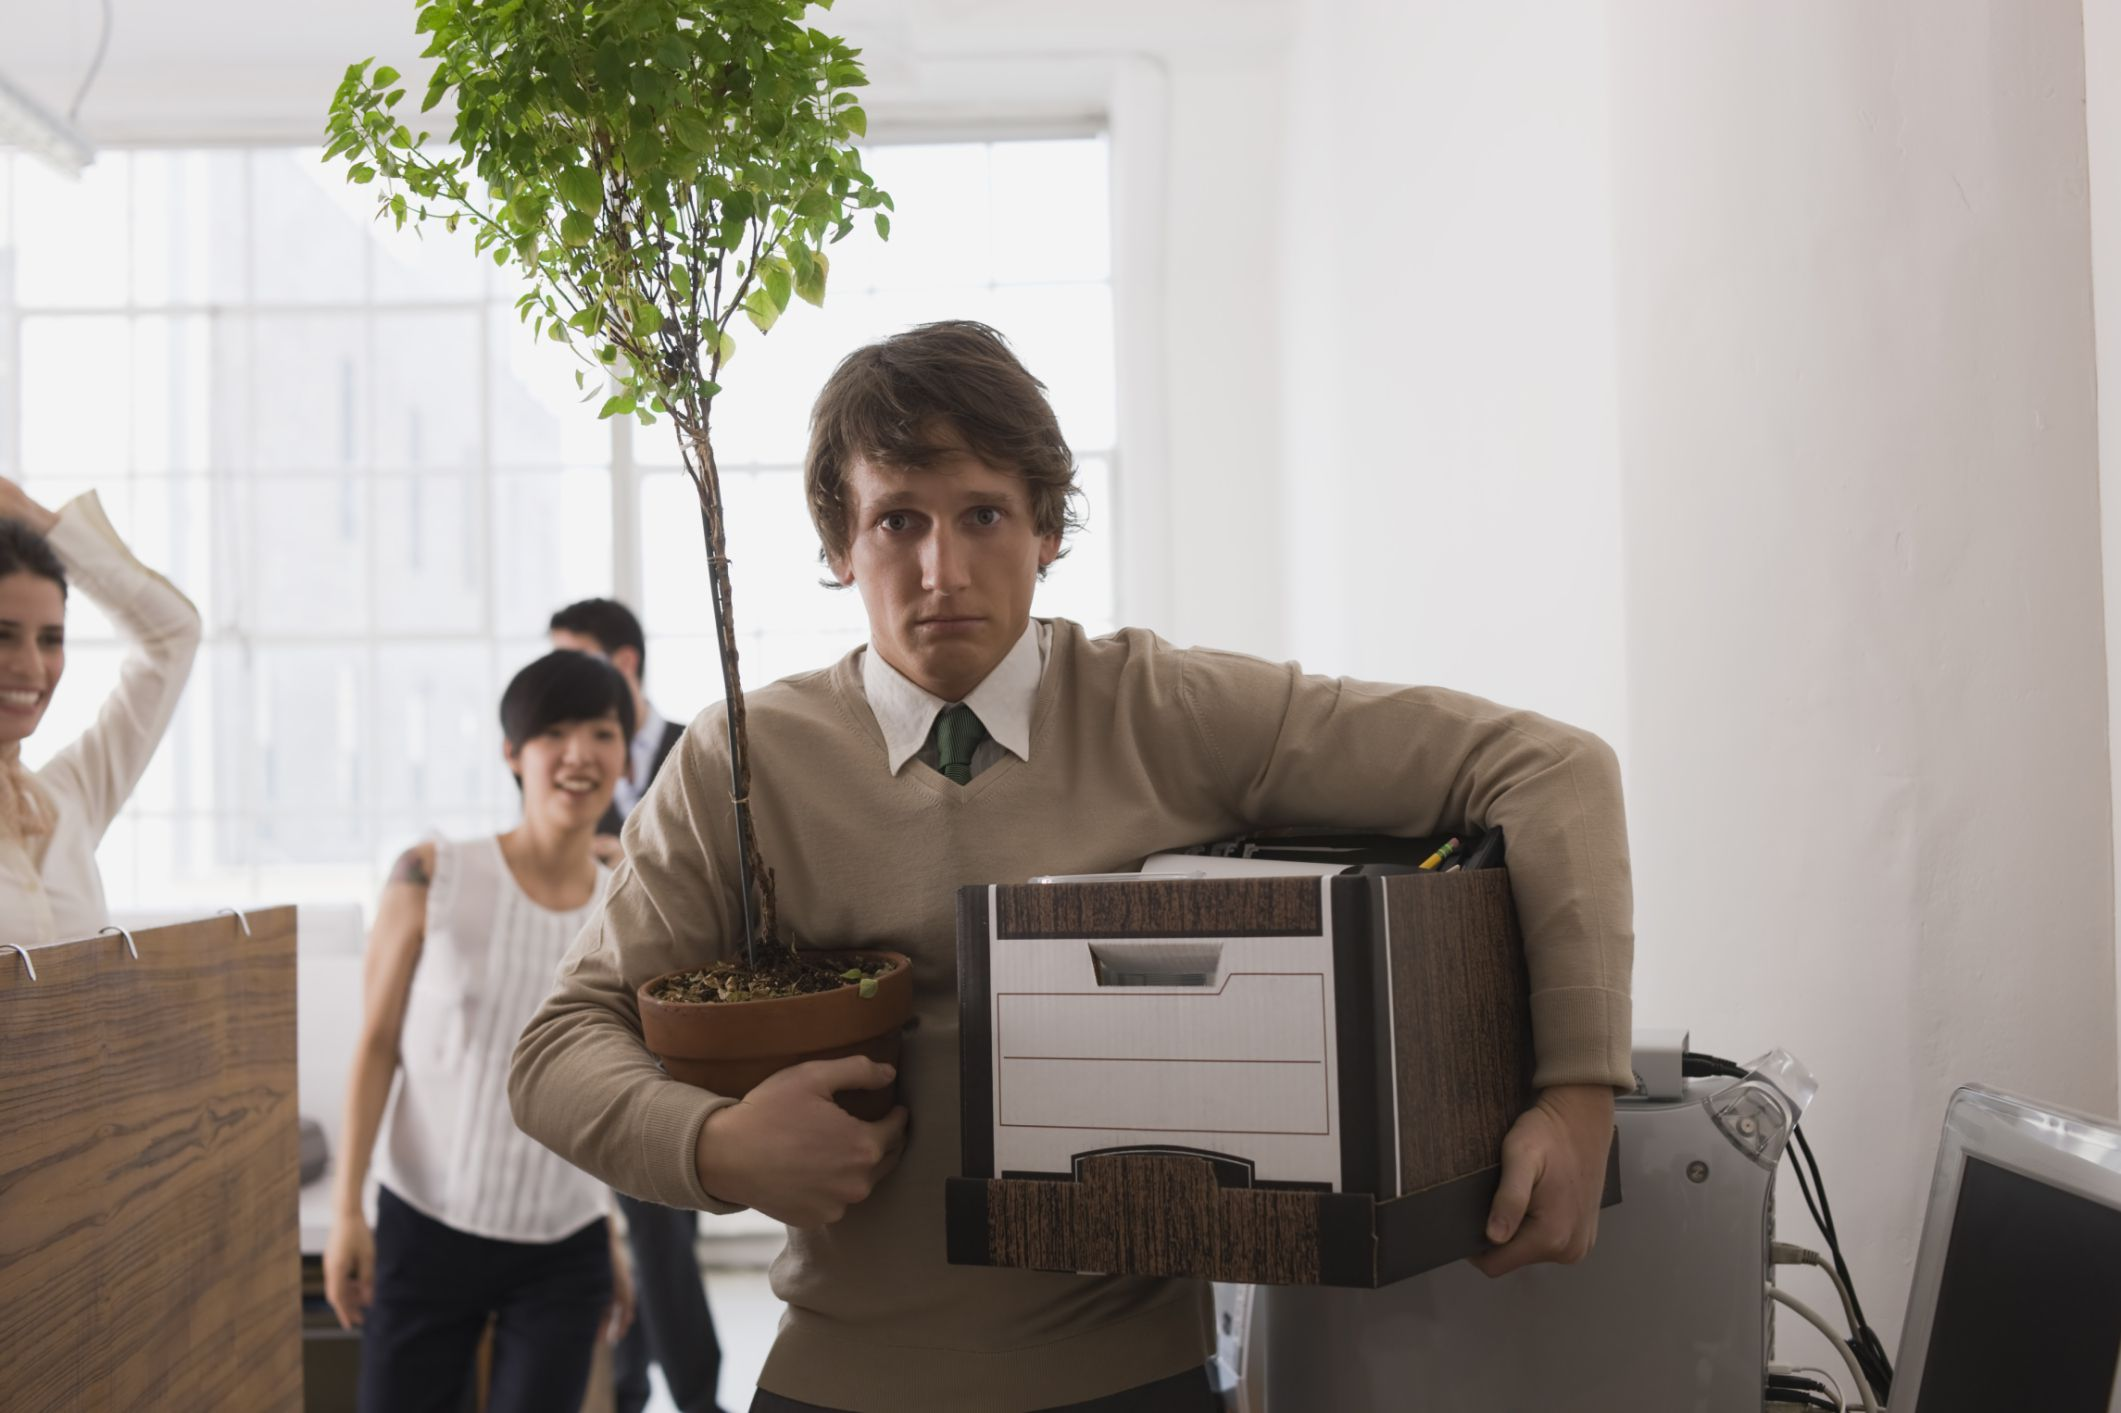 how to cope when coworkers lose their jobs - Losing Job Getting Fired From Job